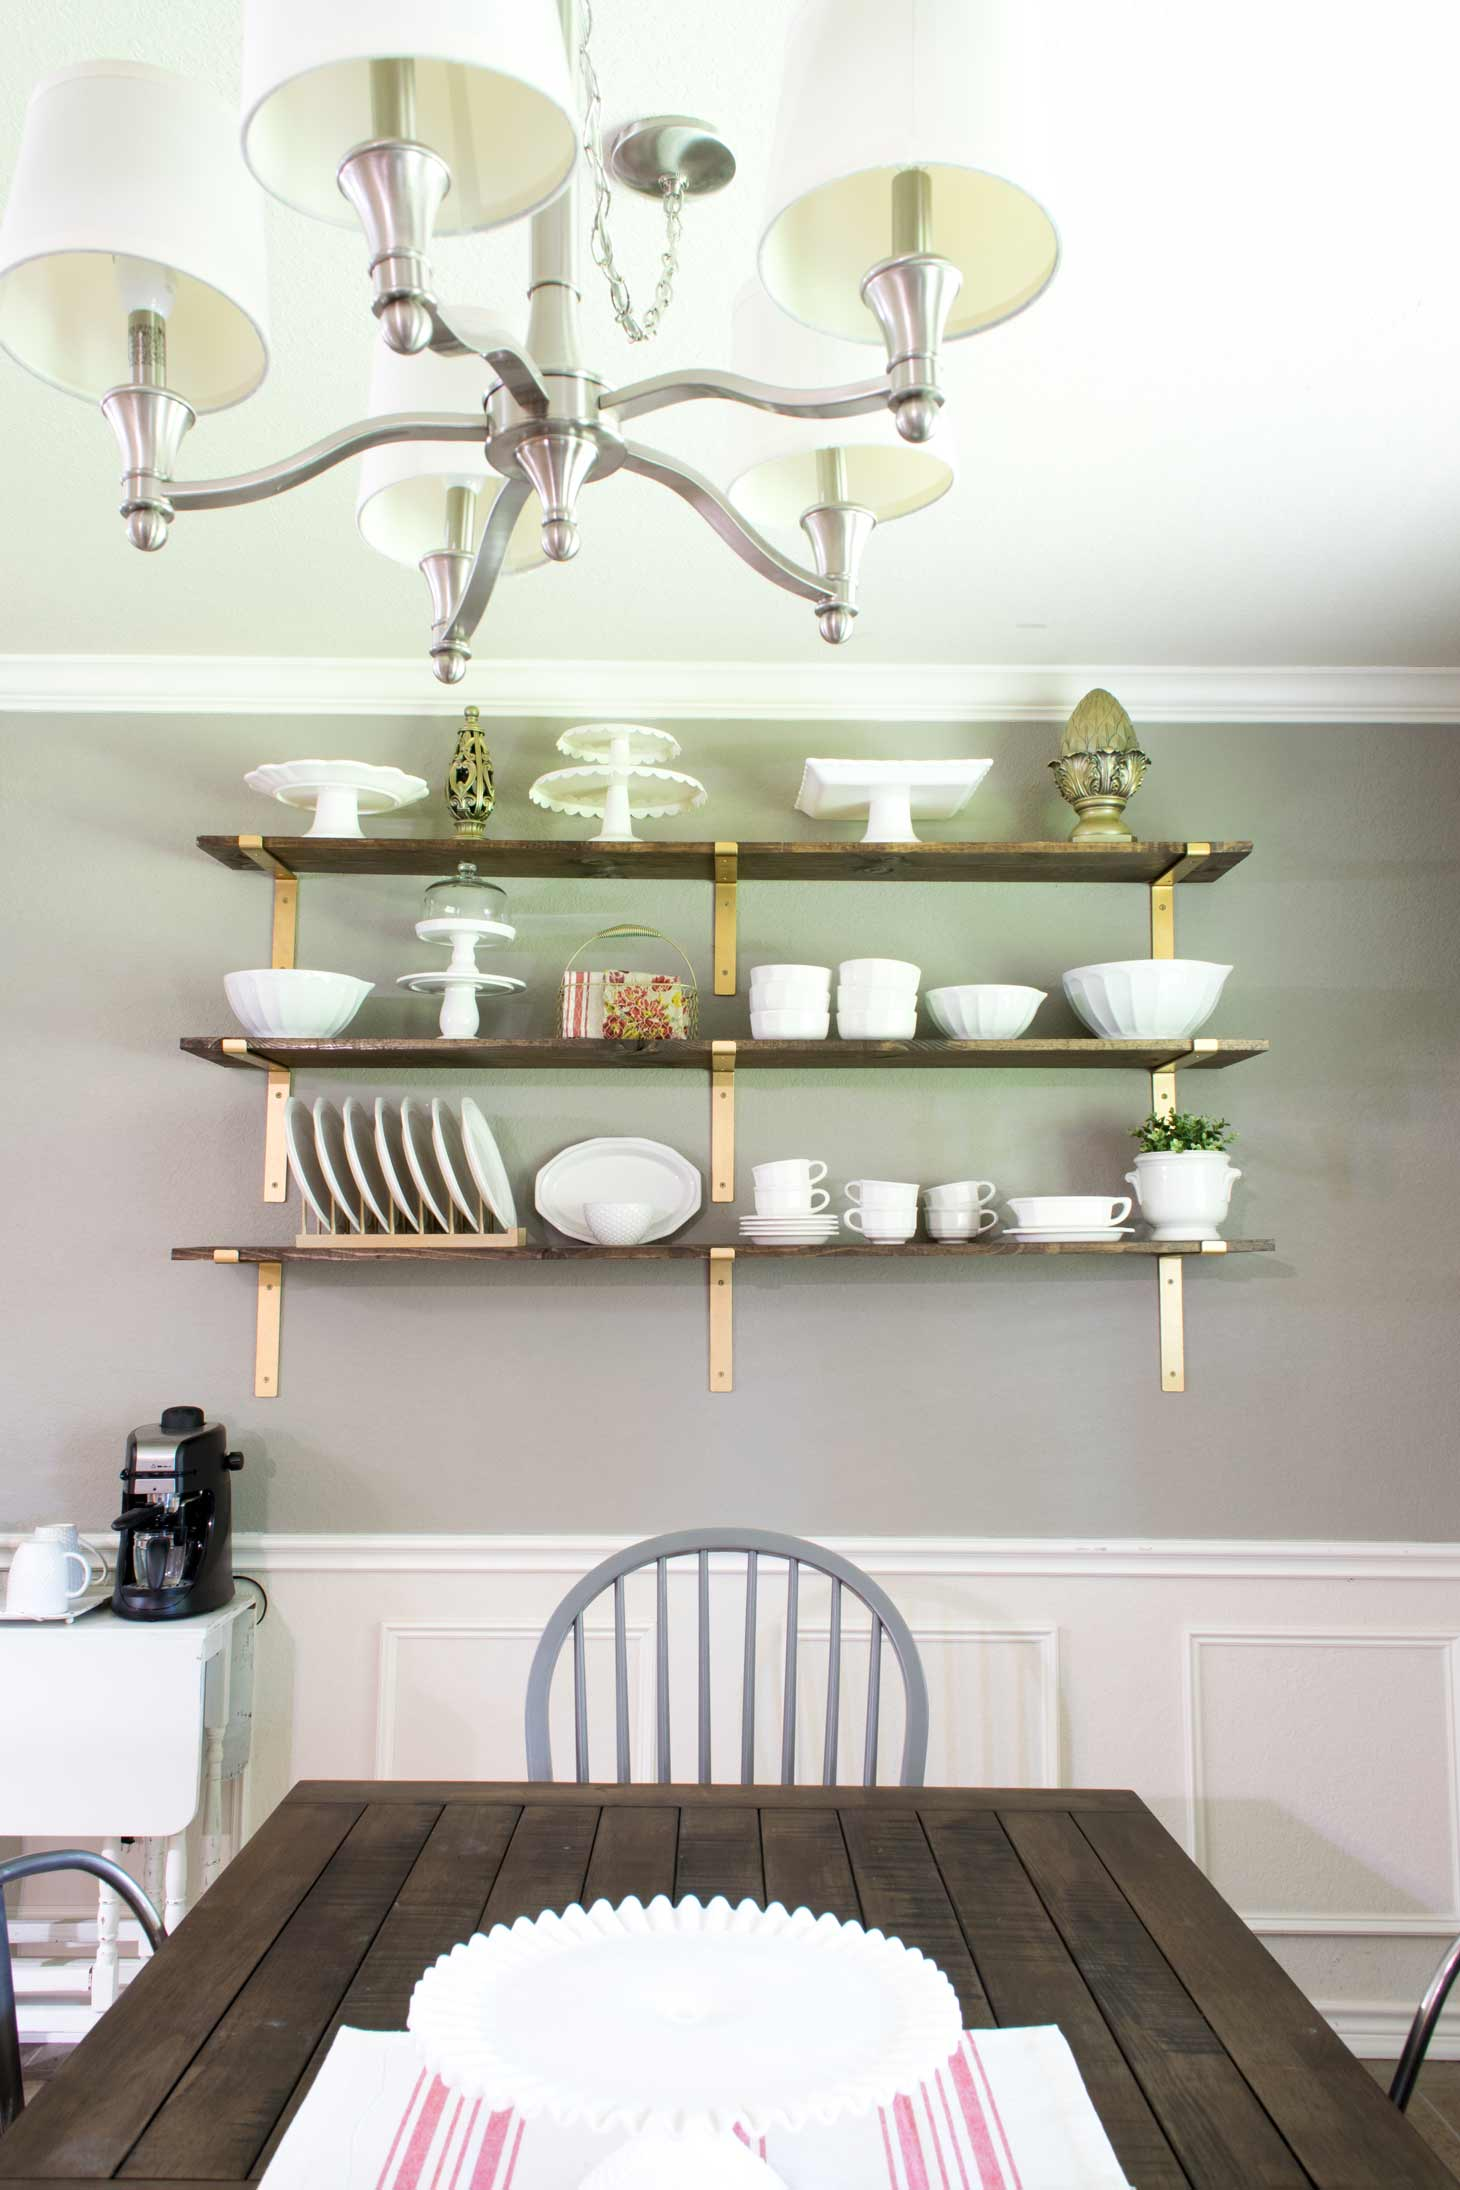 A rustic wood table with open shelving on a wall for the farm house look